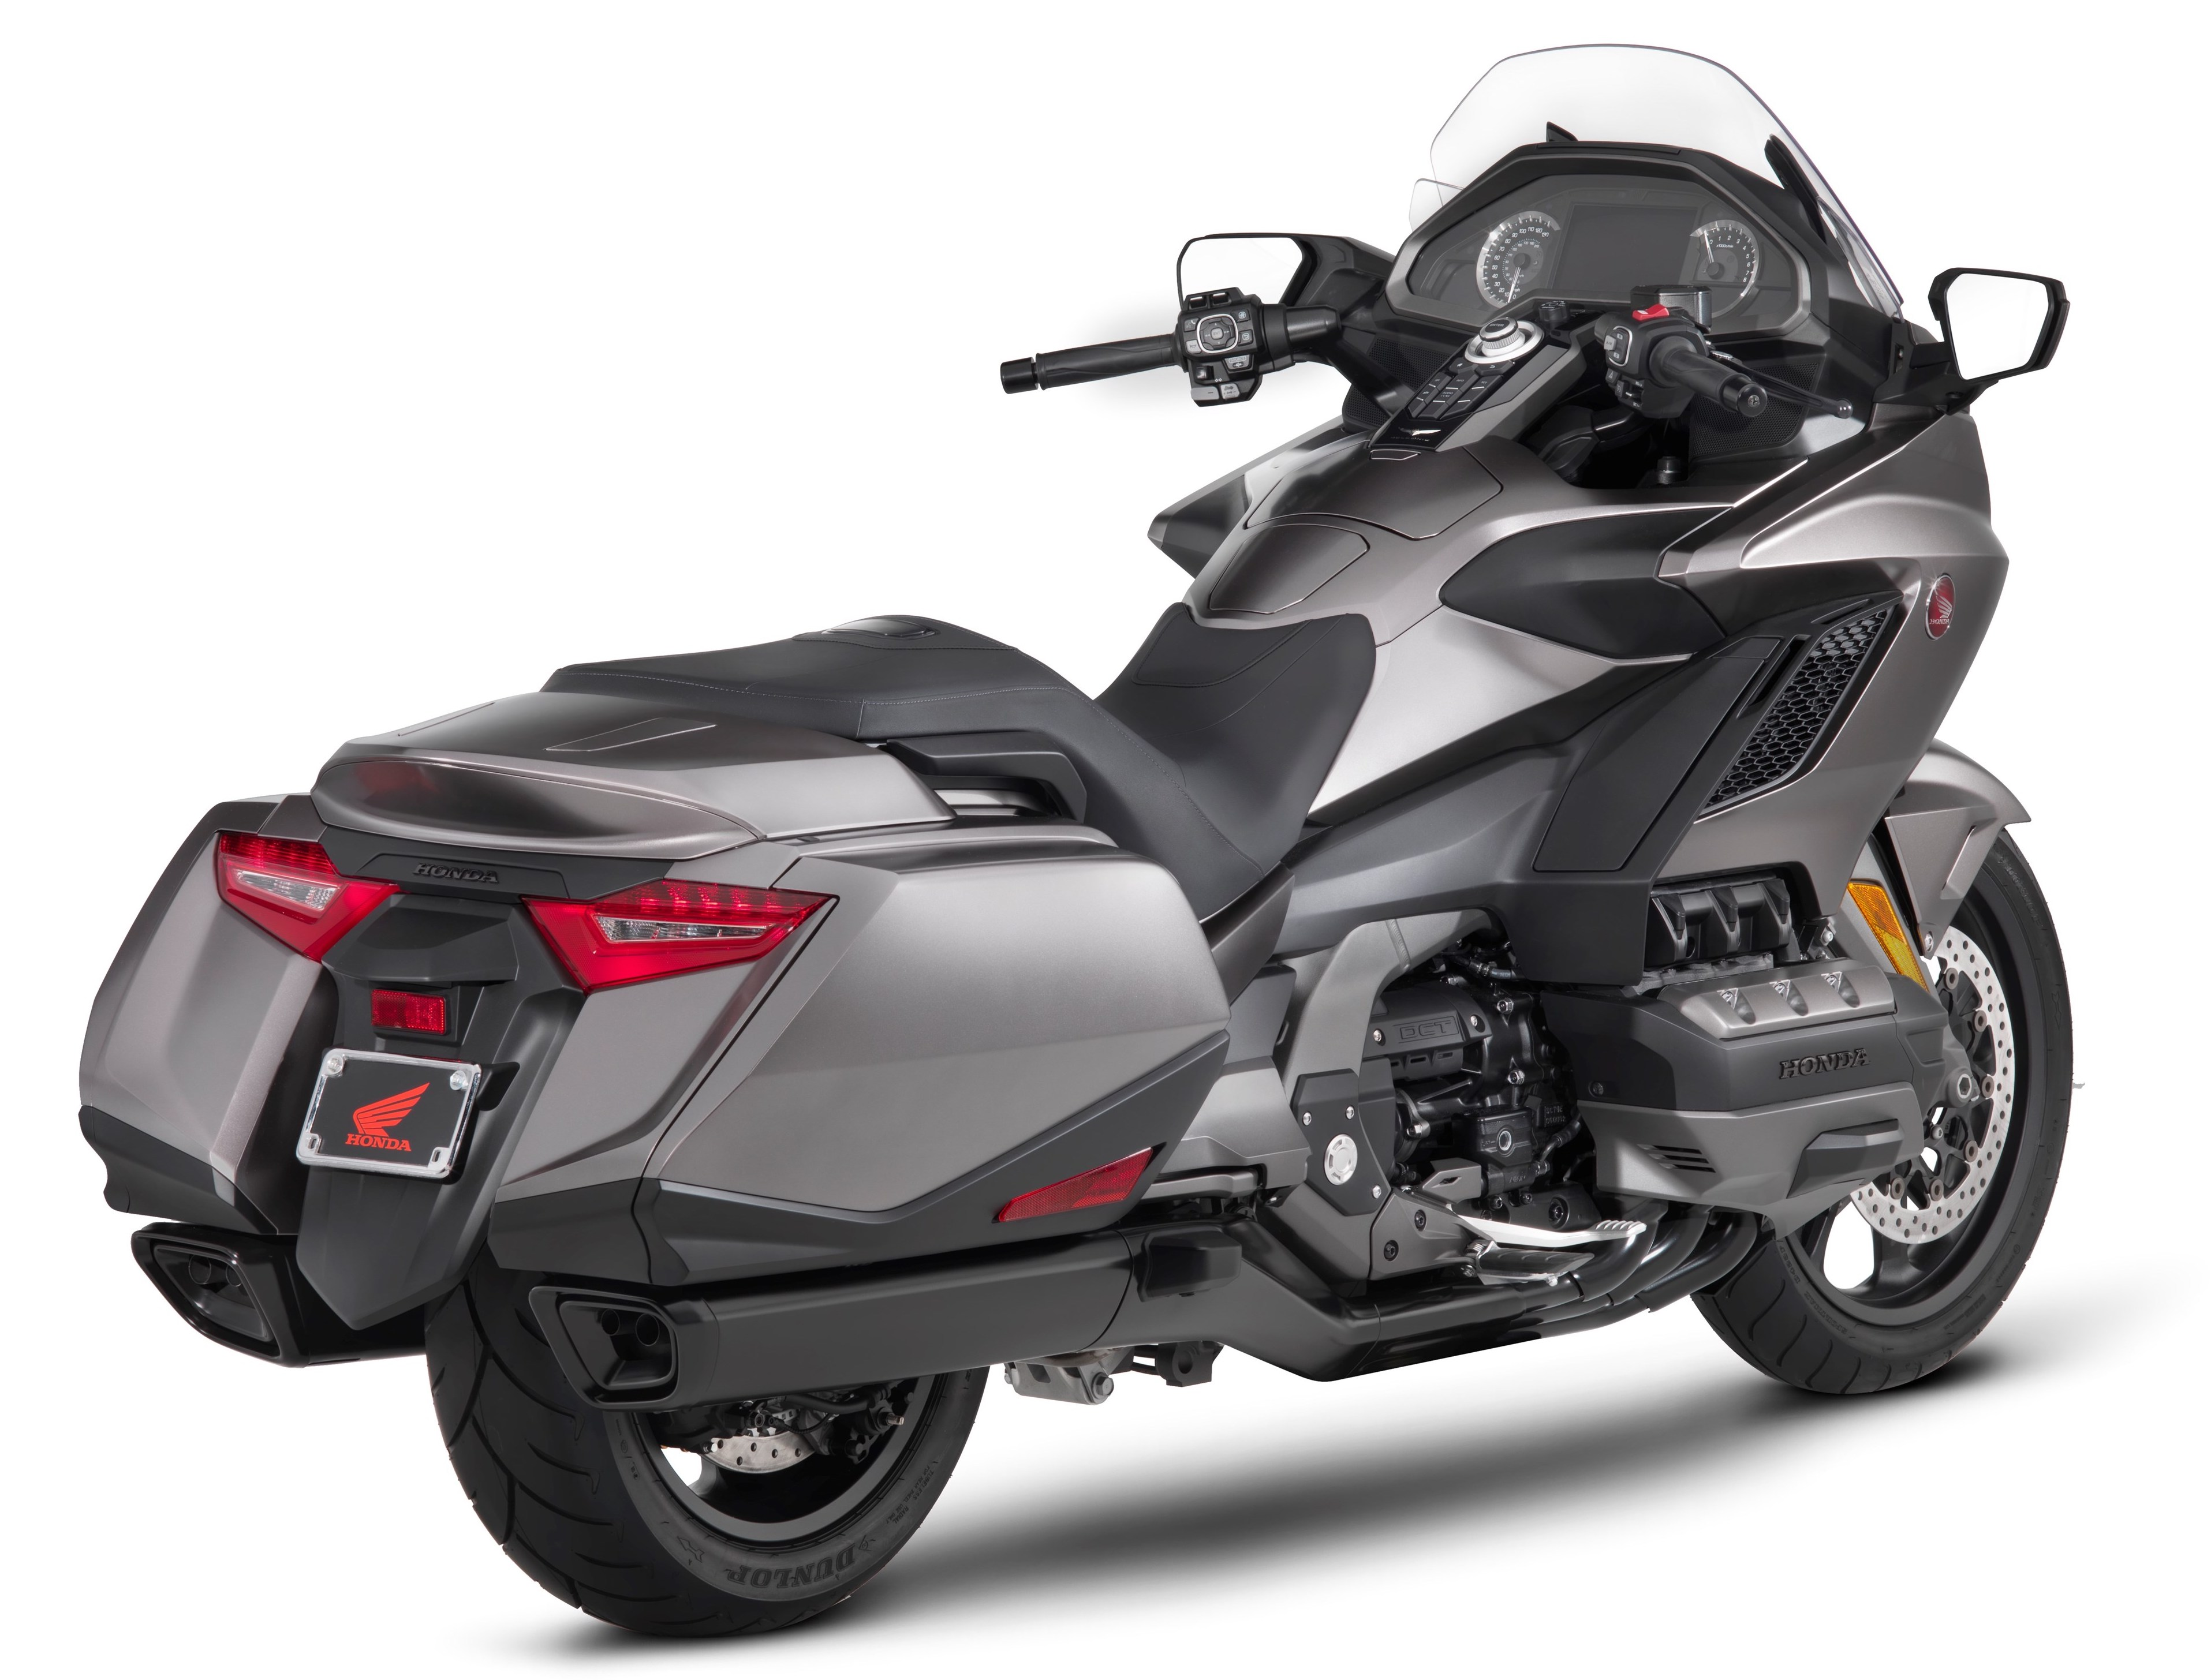 New Honda Motorcycle For